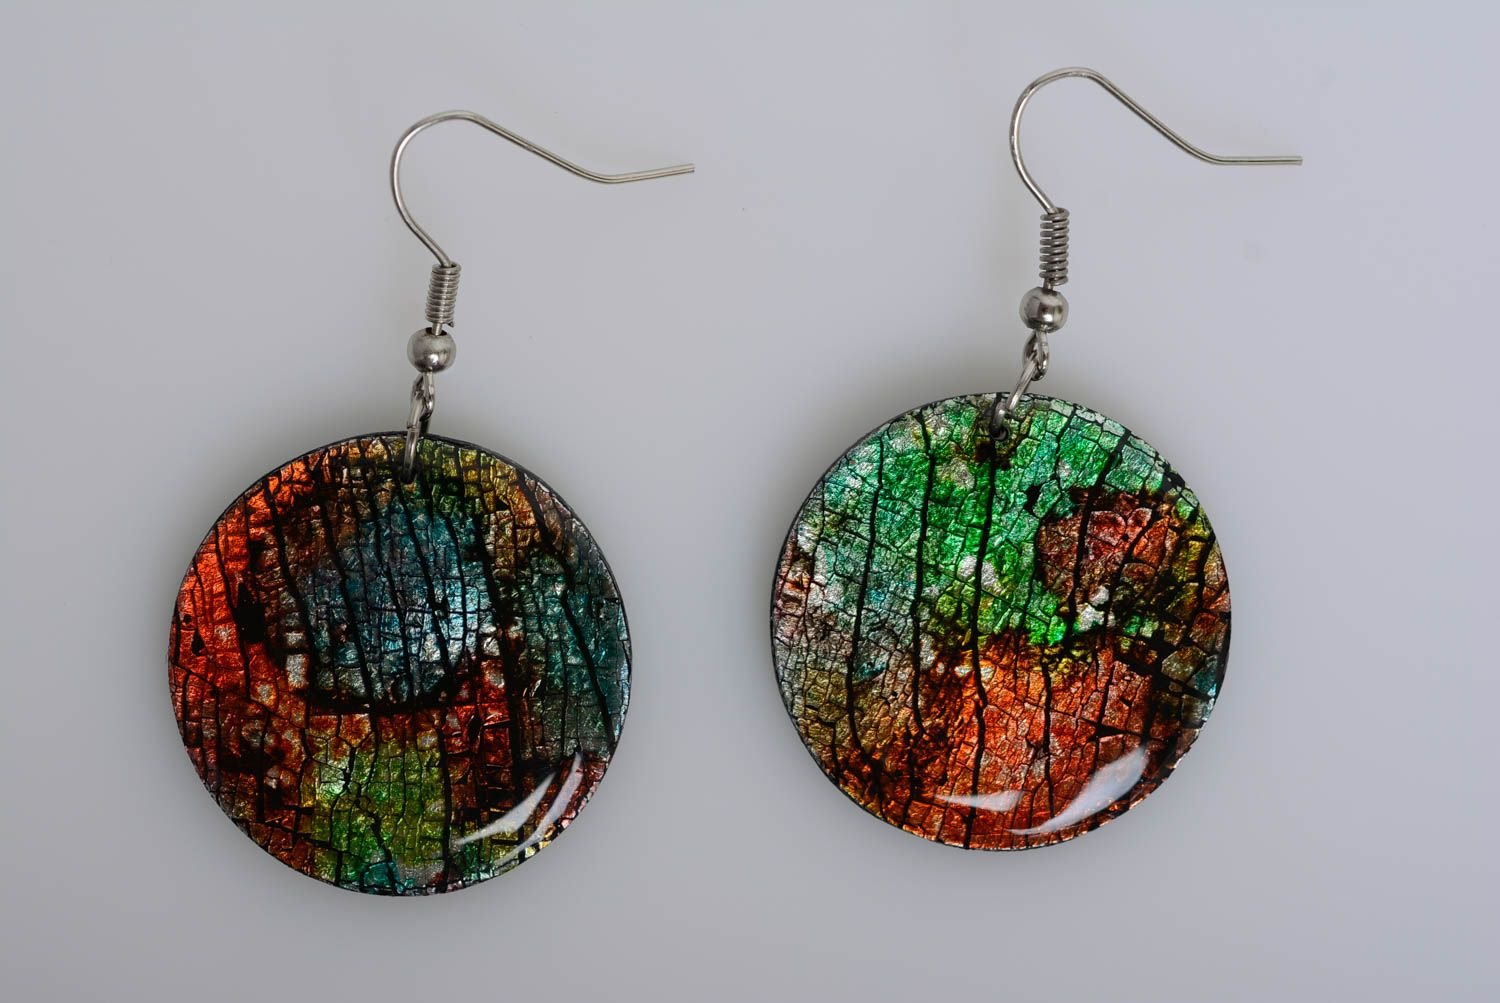 polymer clay earrings Polymer clay round-shaped earrings handmade stylish women accessory for summer - MADEheart.com